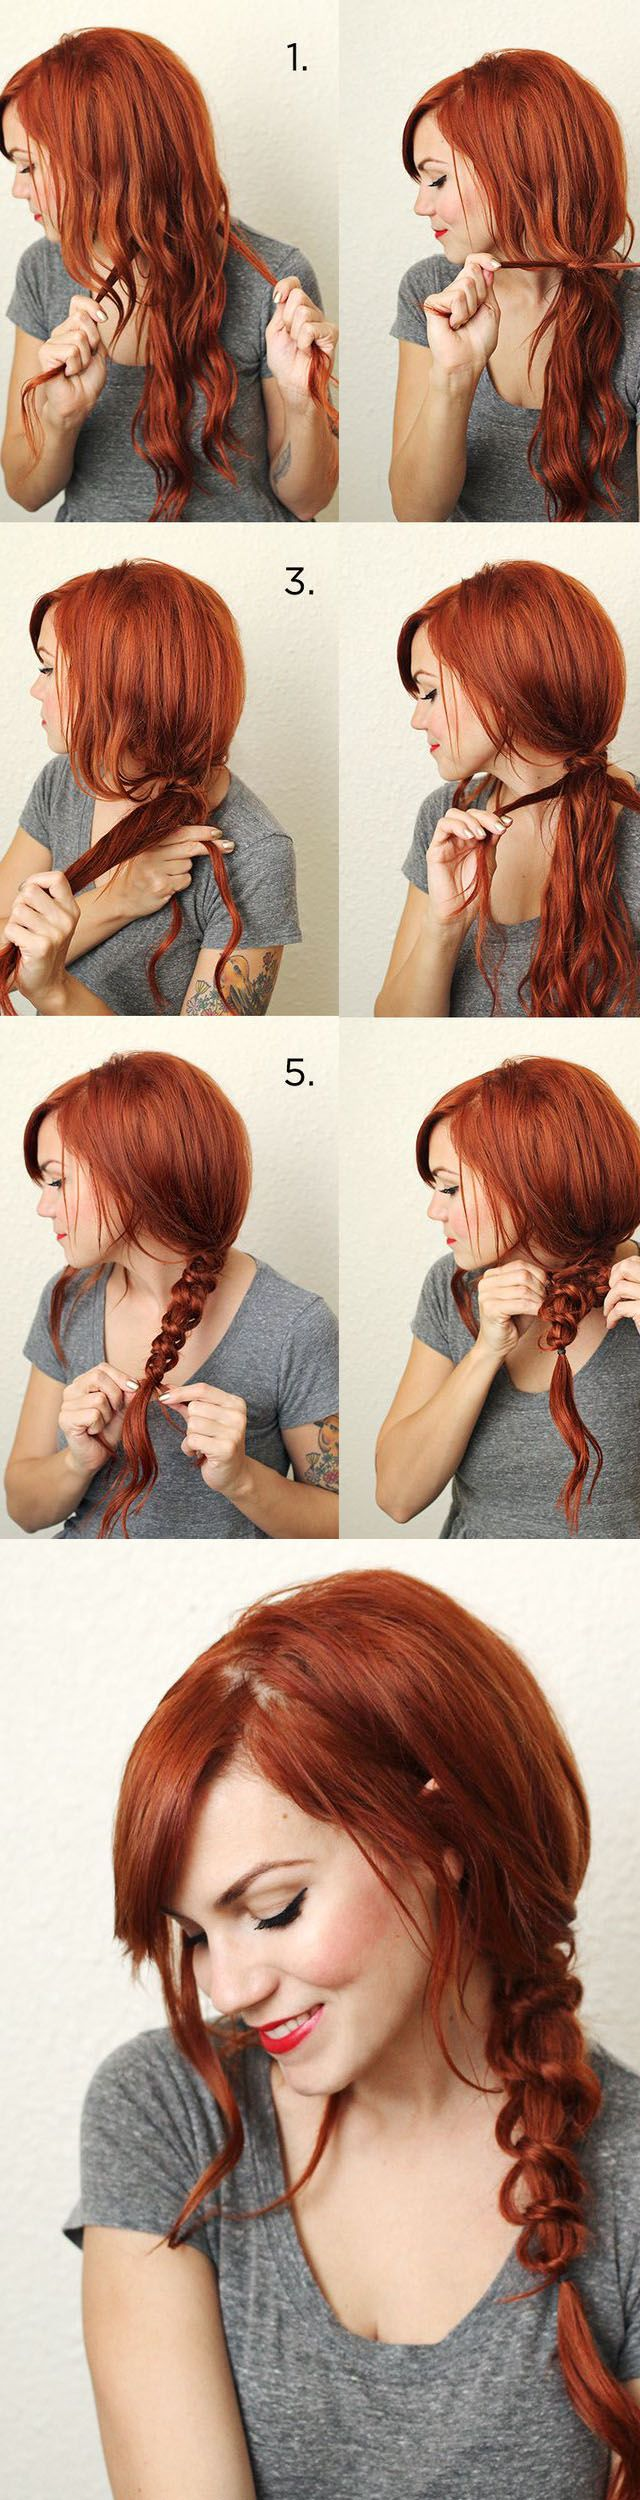 15 Easy Braid Tutorials You Have Never Tried Before ...